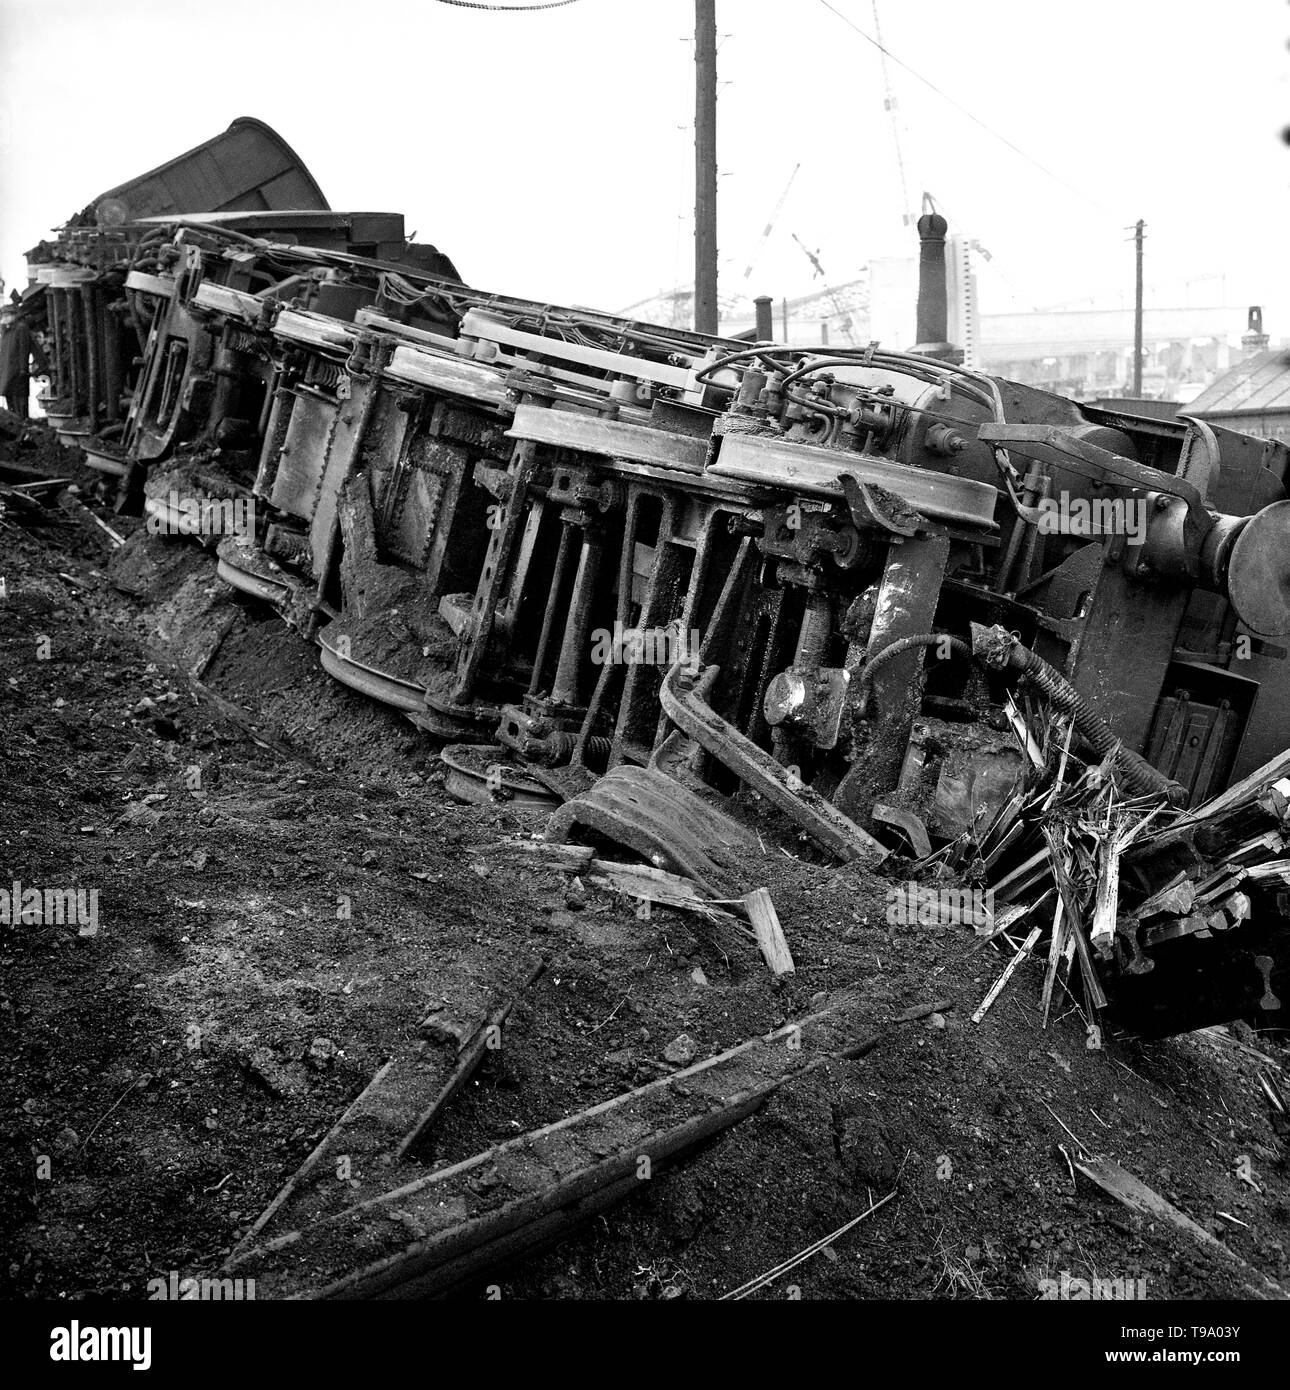 5th November 1967. An over-turned passenger train carriage. On the busy Sunday evening service from Hastings to Charing Cross Station, London the train derailed at Hither Green Depot, killing 49 people and injuring 78. - Stock Image